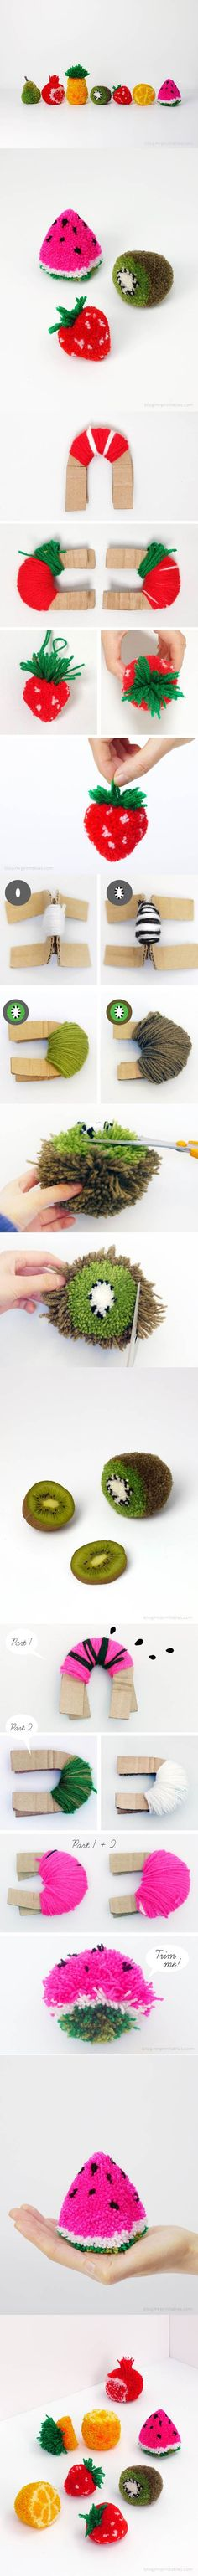 DIY Fruit Pom Poms | iCreativeIdeas.com Like Us on Facebook ==> https://www.facebook.com/icreativeideas